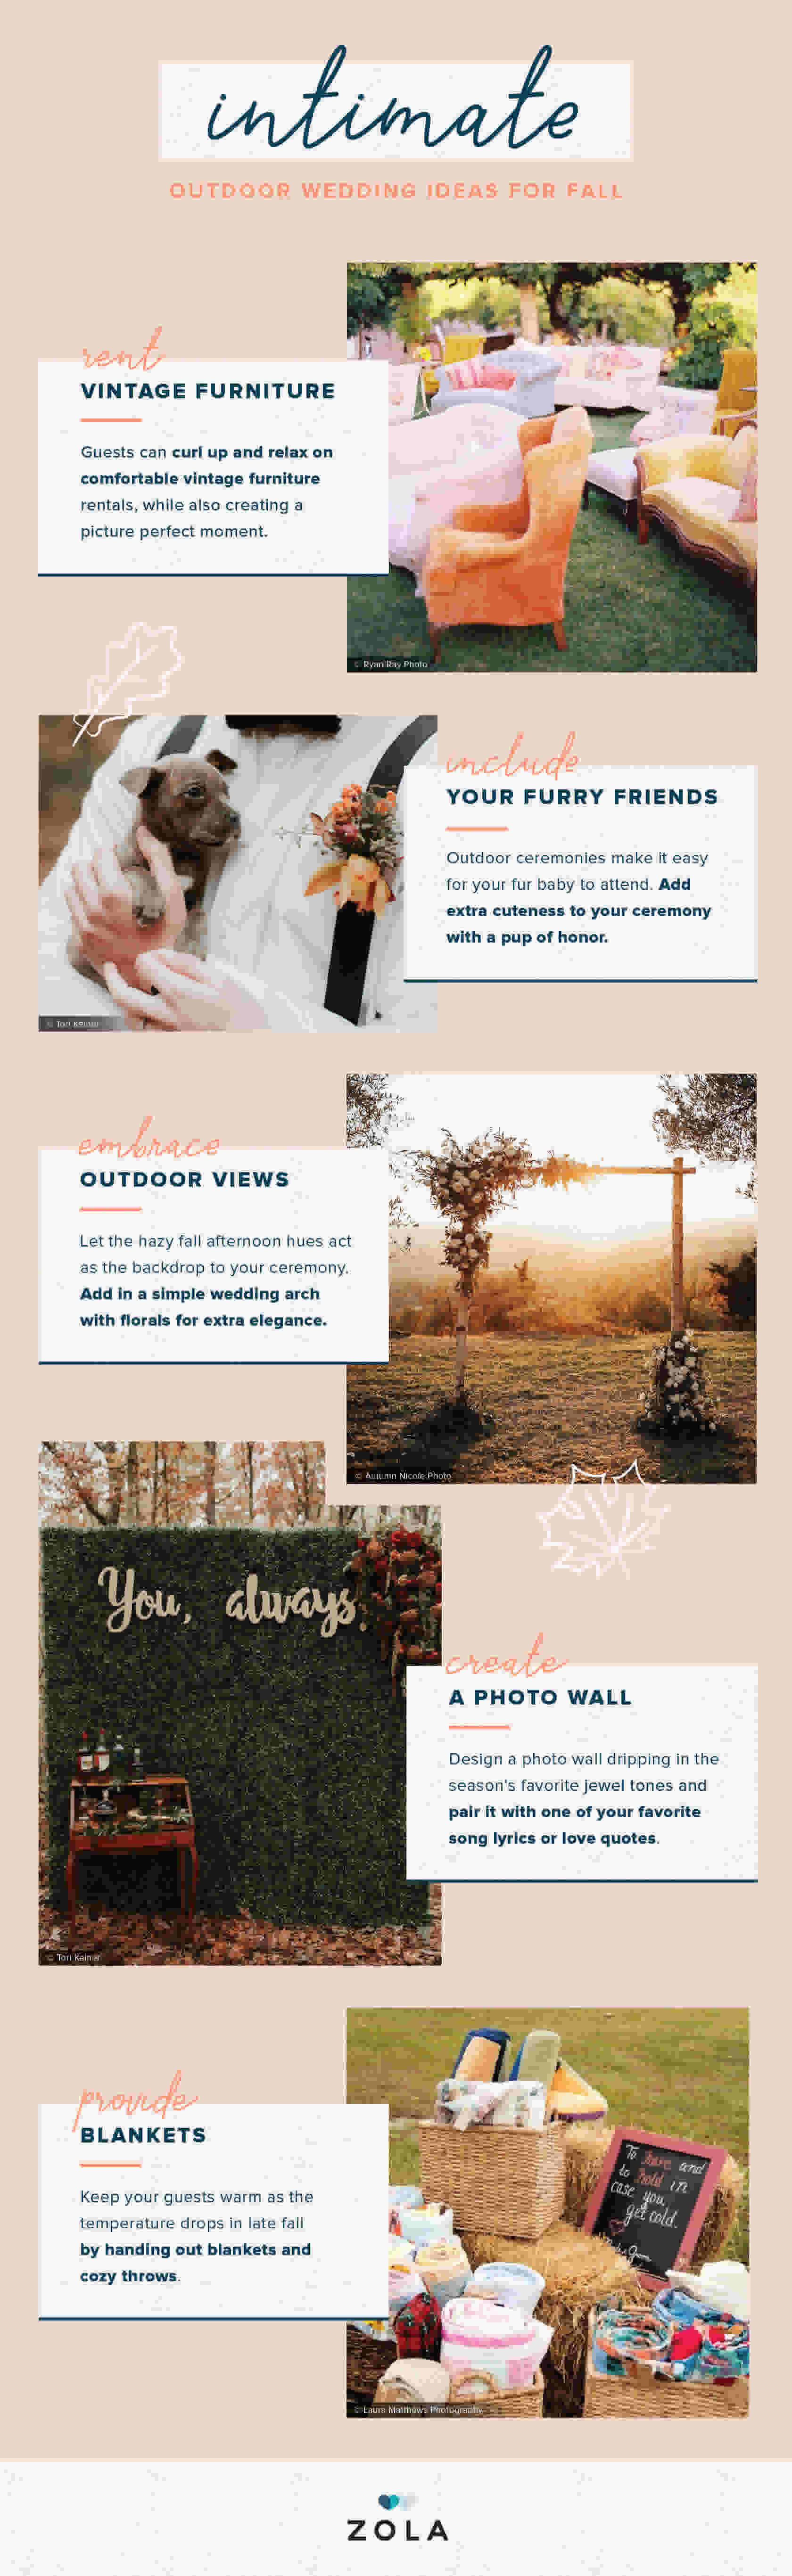 outdoor-wedding-ideas-for-fall-intimate